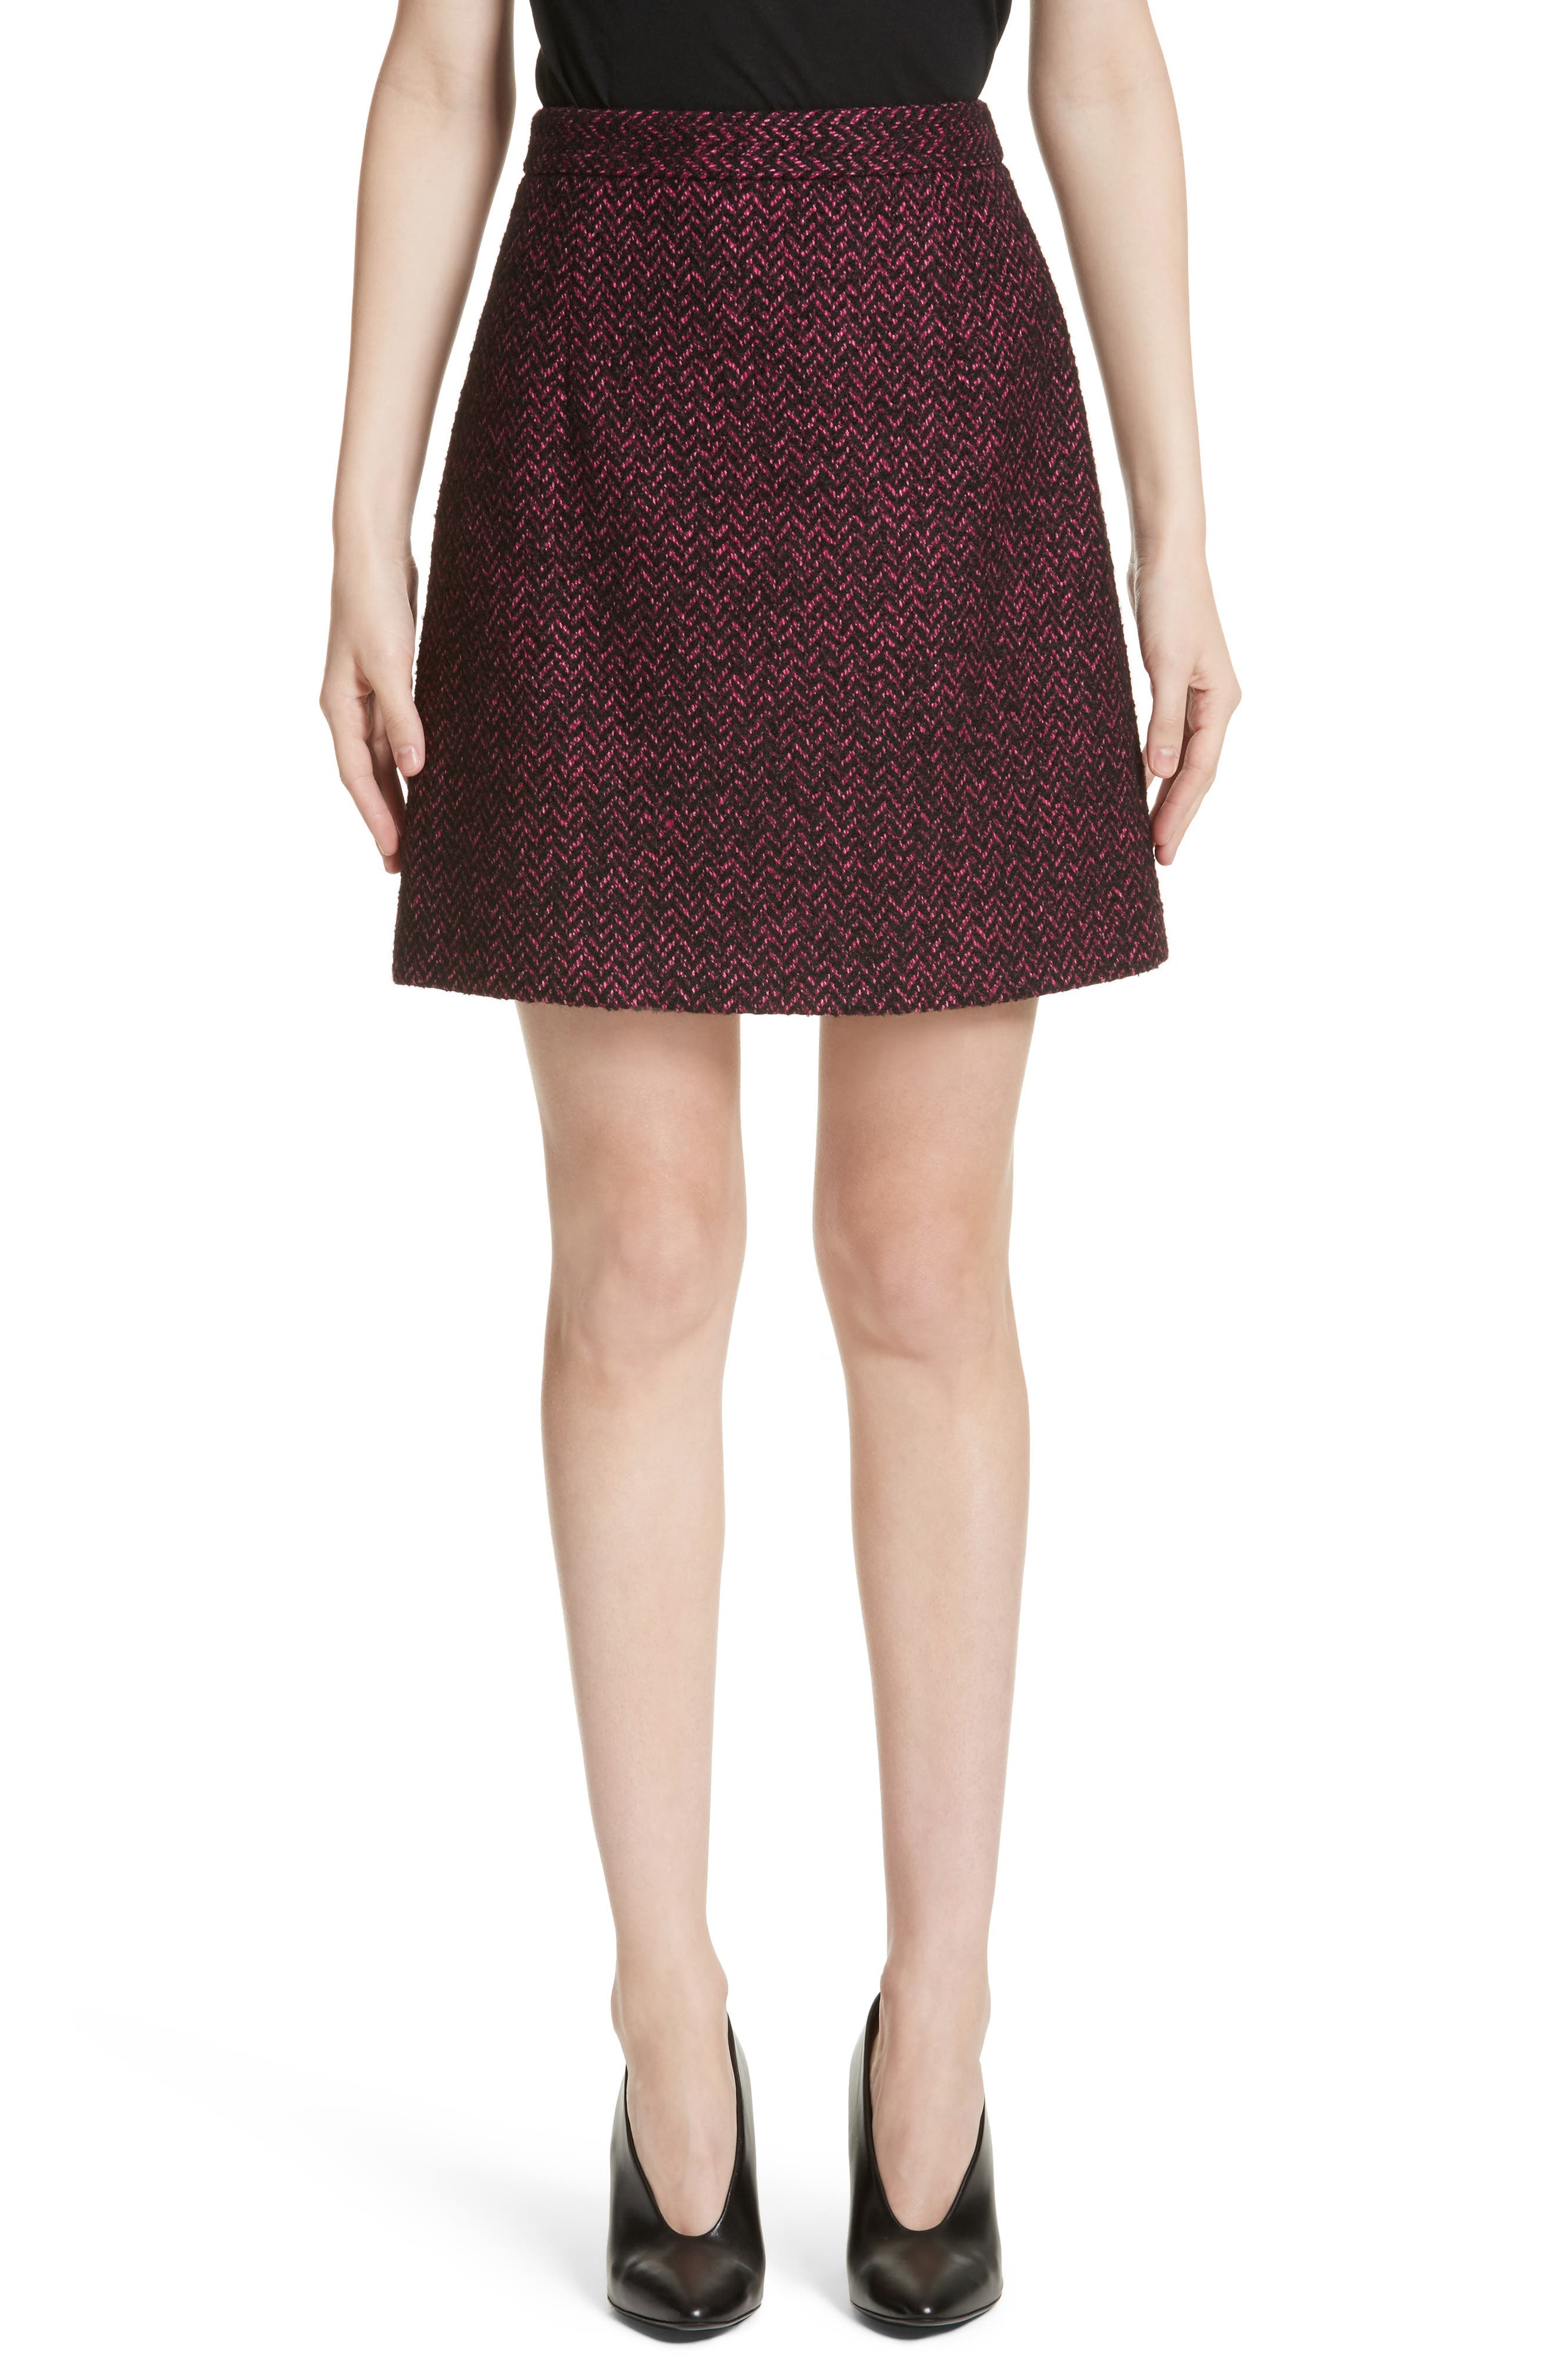 Michael Kors Herringbone Wool Blend A-Line Skirt